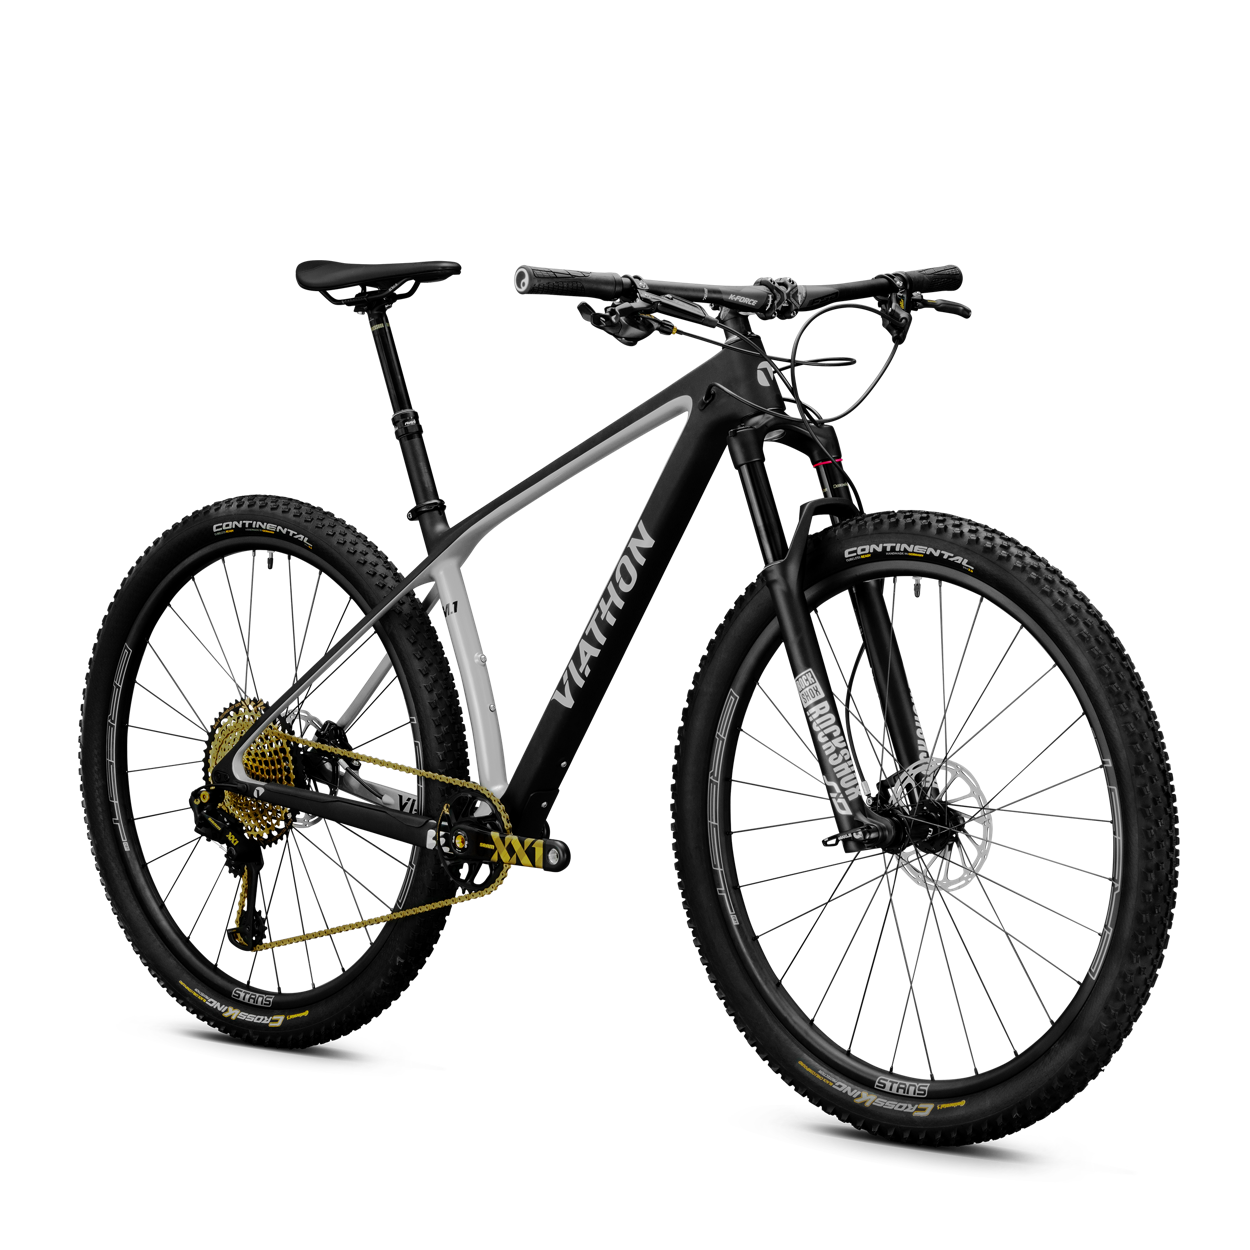 43dc9488913 Viathon Bicycles | M.1 Mountain Bike | SRAM XX1 Eagle Equipped